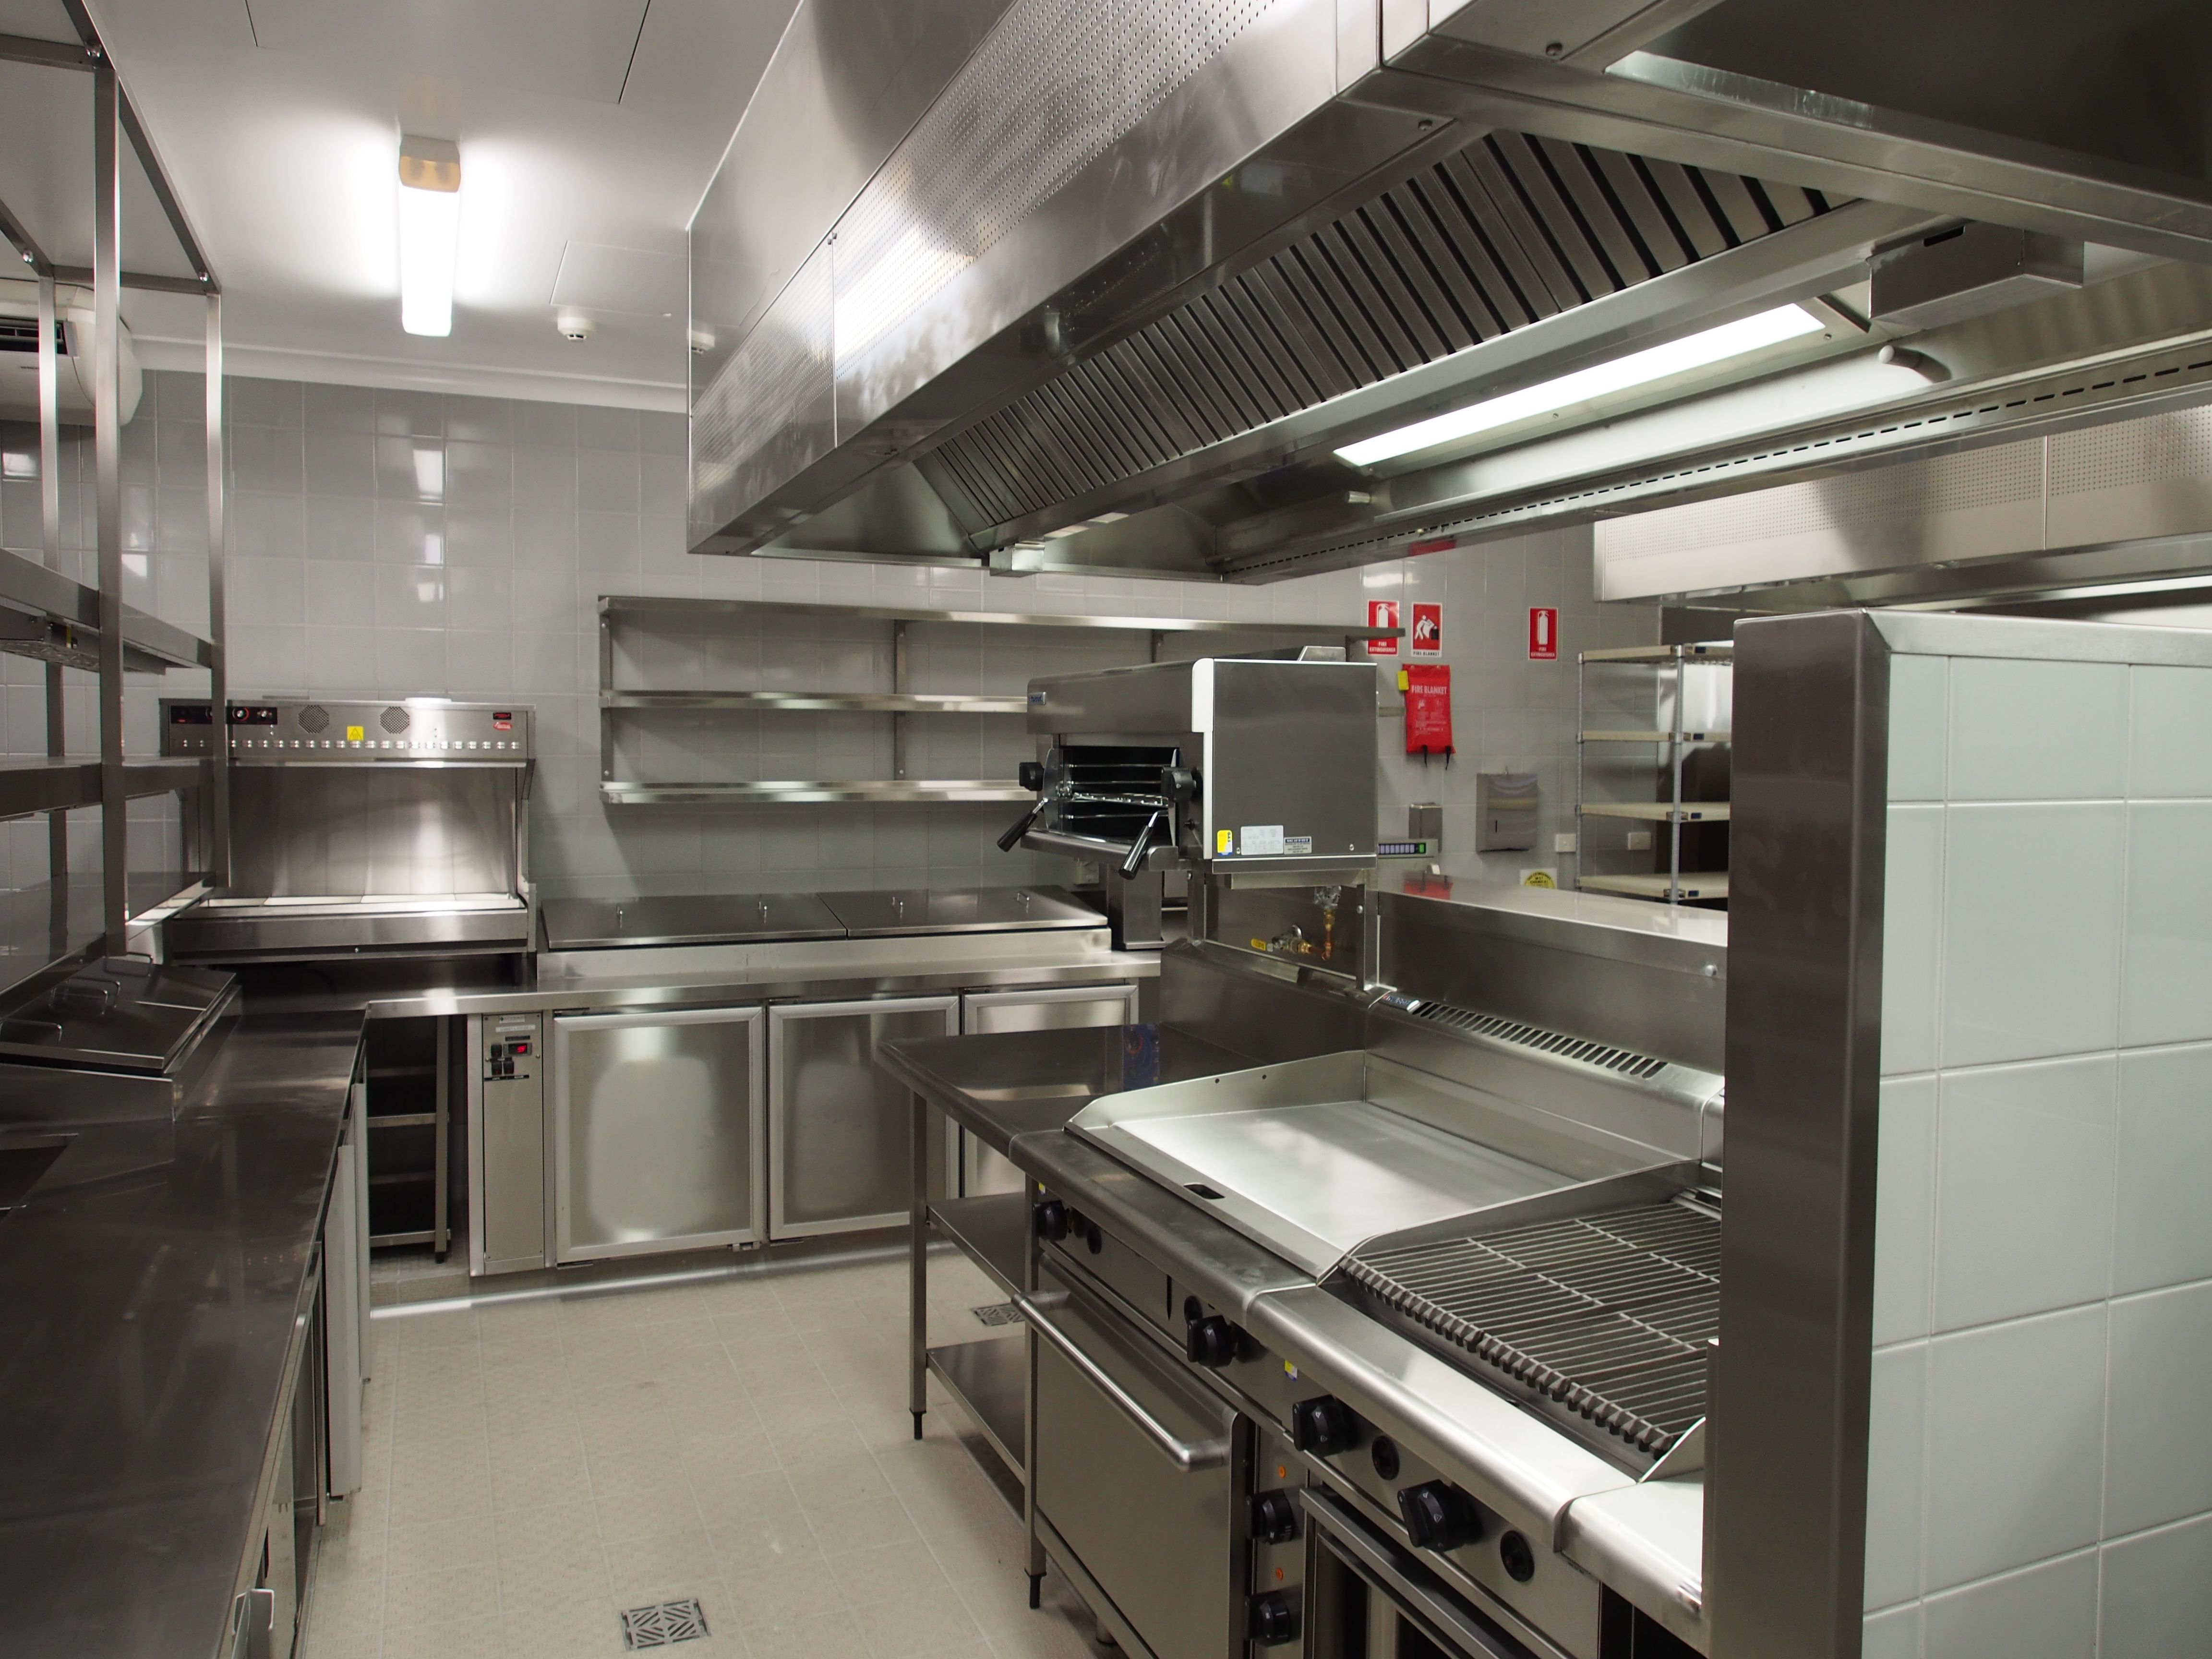 Commercial Kitchens - Cairns | Proyectos a intentar | Pinterest ...